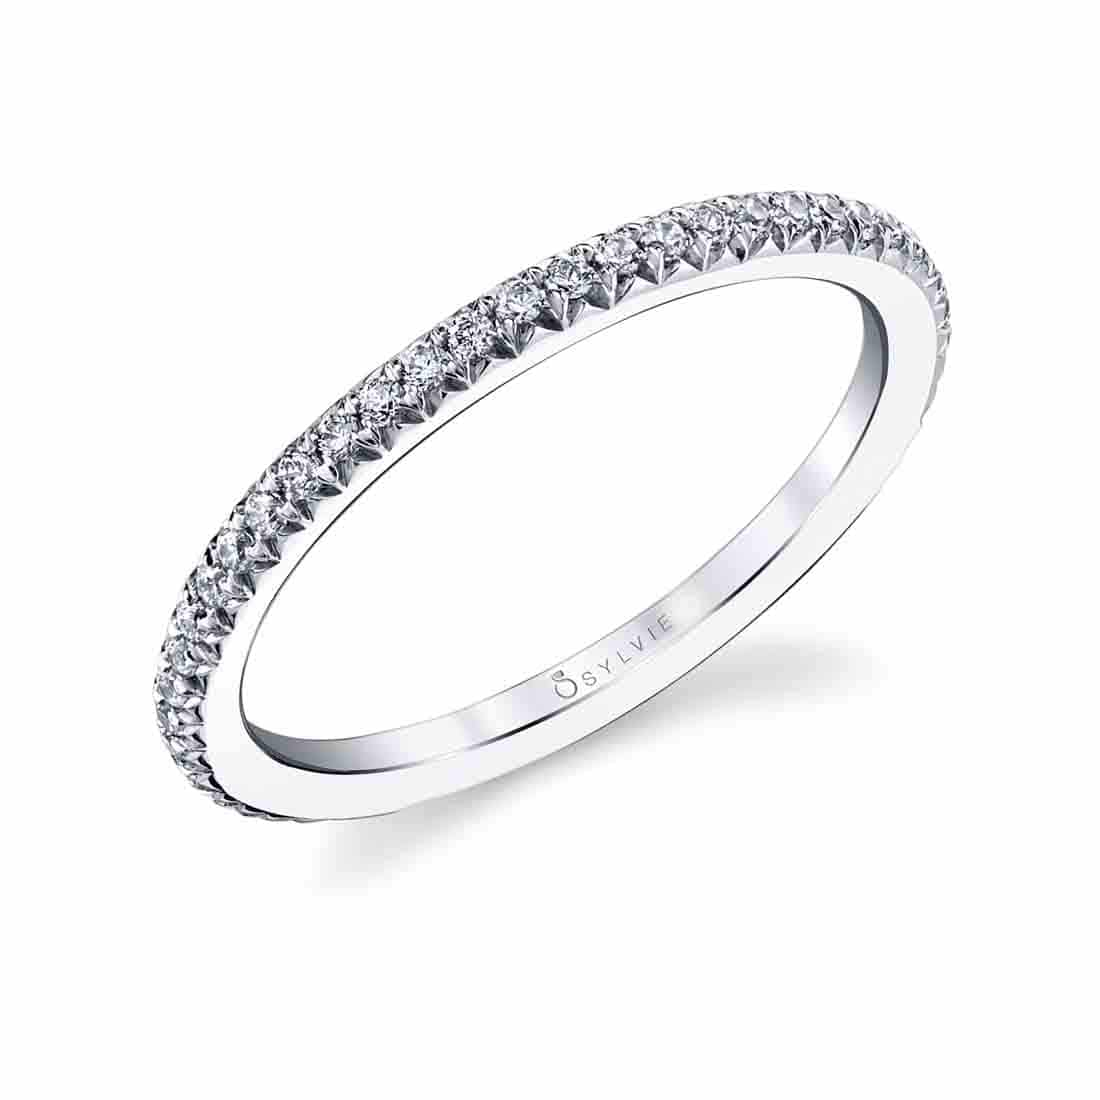 Profile of Oval Engagement Ring with Halo